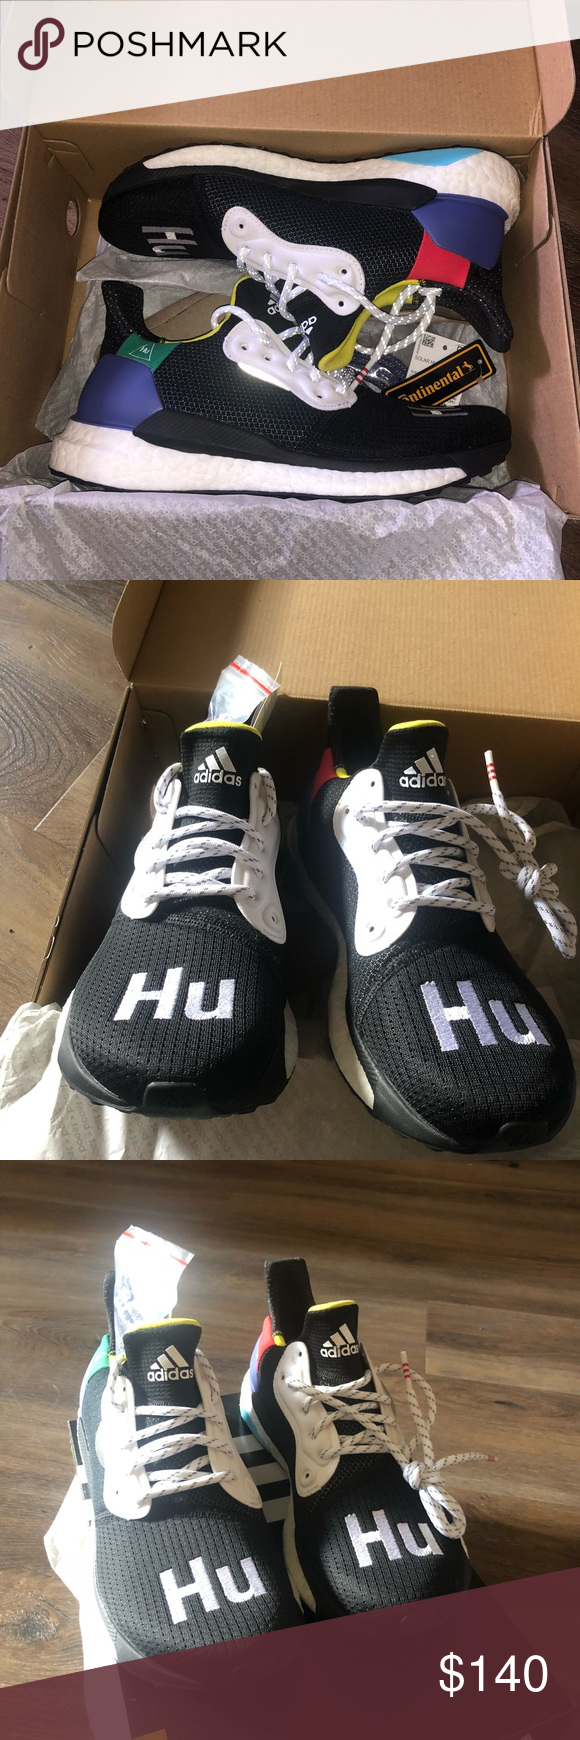 4eeb0a779 Adidas Solar Hu Glide size 6.5 woman s NWT Dead stock! Brand new. Awesome  human race solar glide boost in black color way